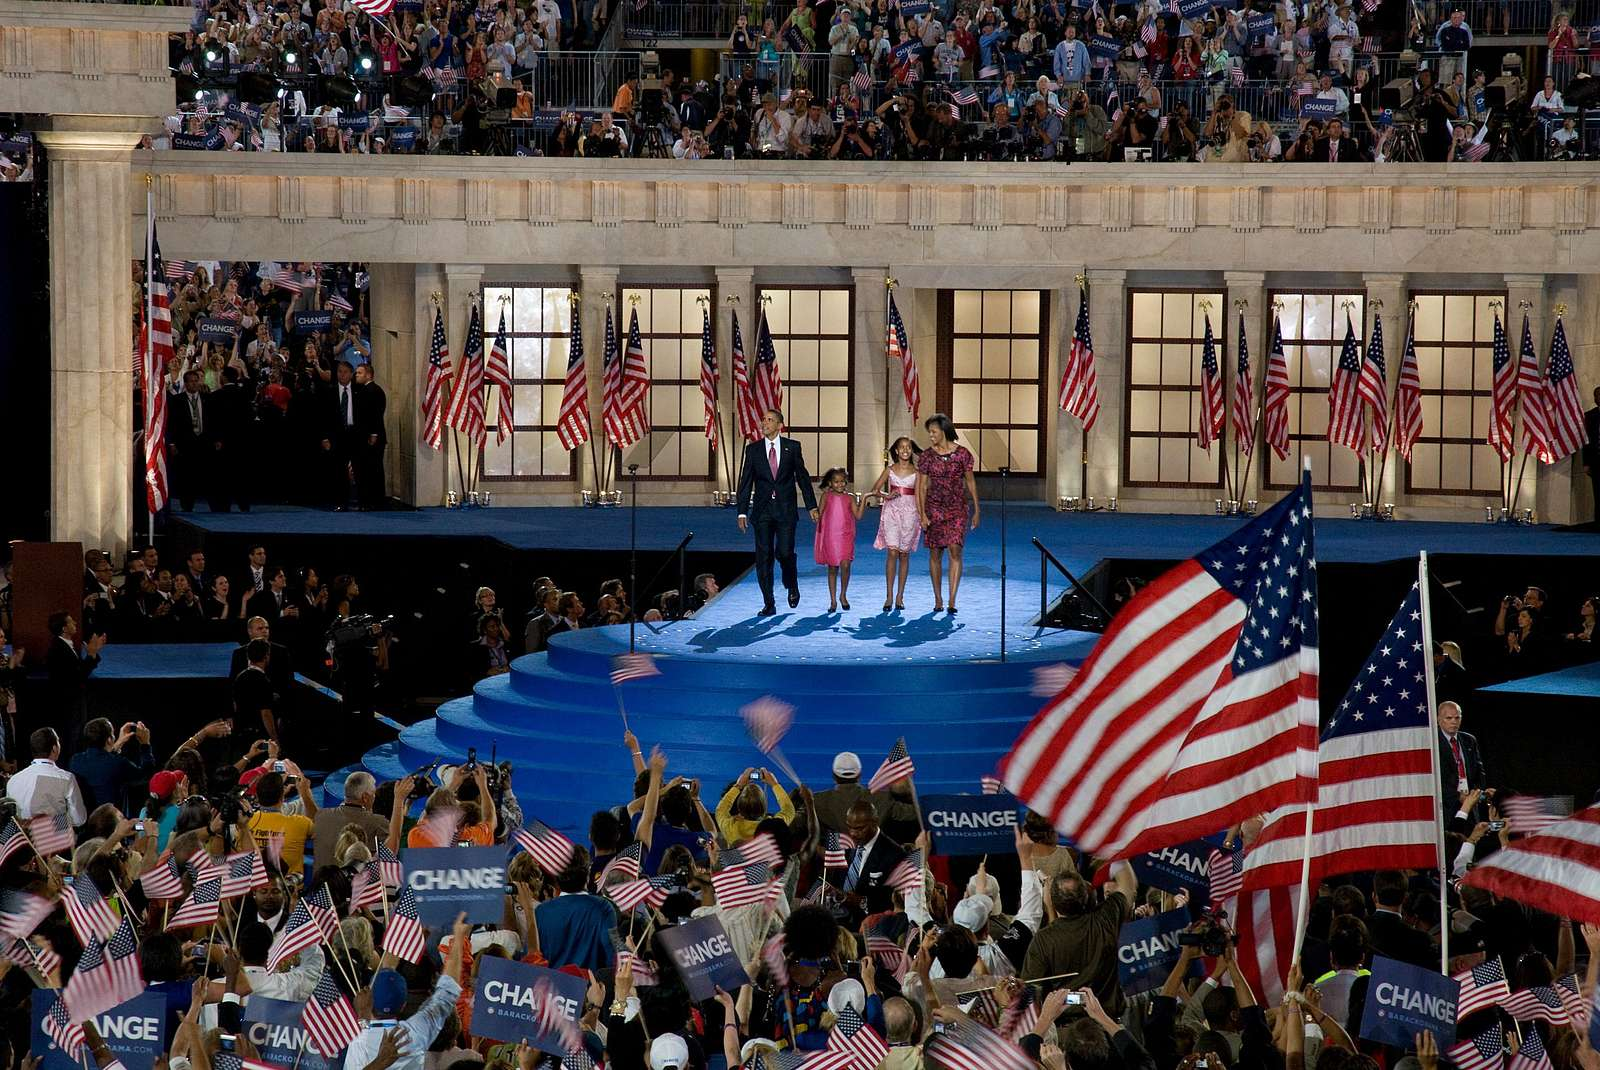 Presidential candidate Barack Obama, his wife Michelle, and his children Malia and Sasha wave to the audience at the Democratic National Convention, Denver, Colorado, August 25-28, 2008